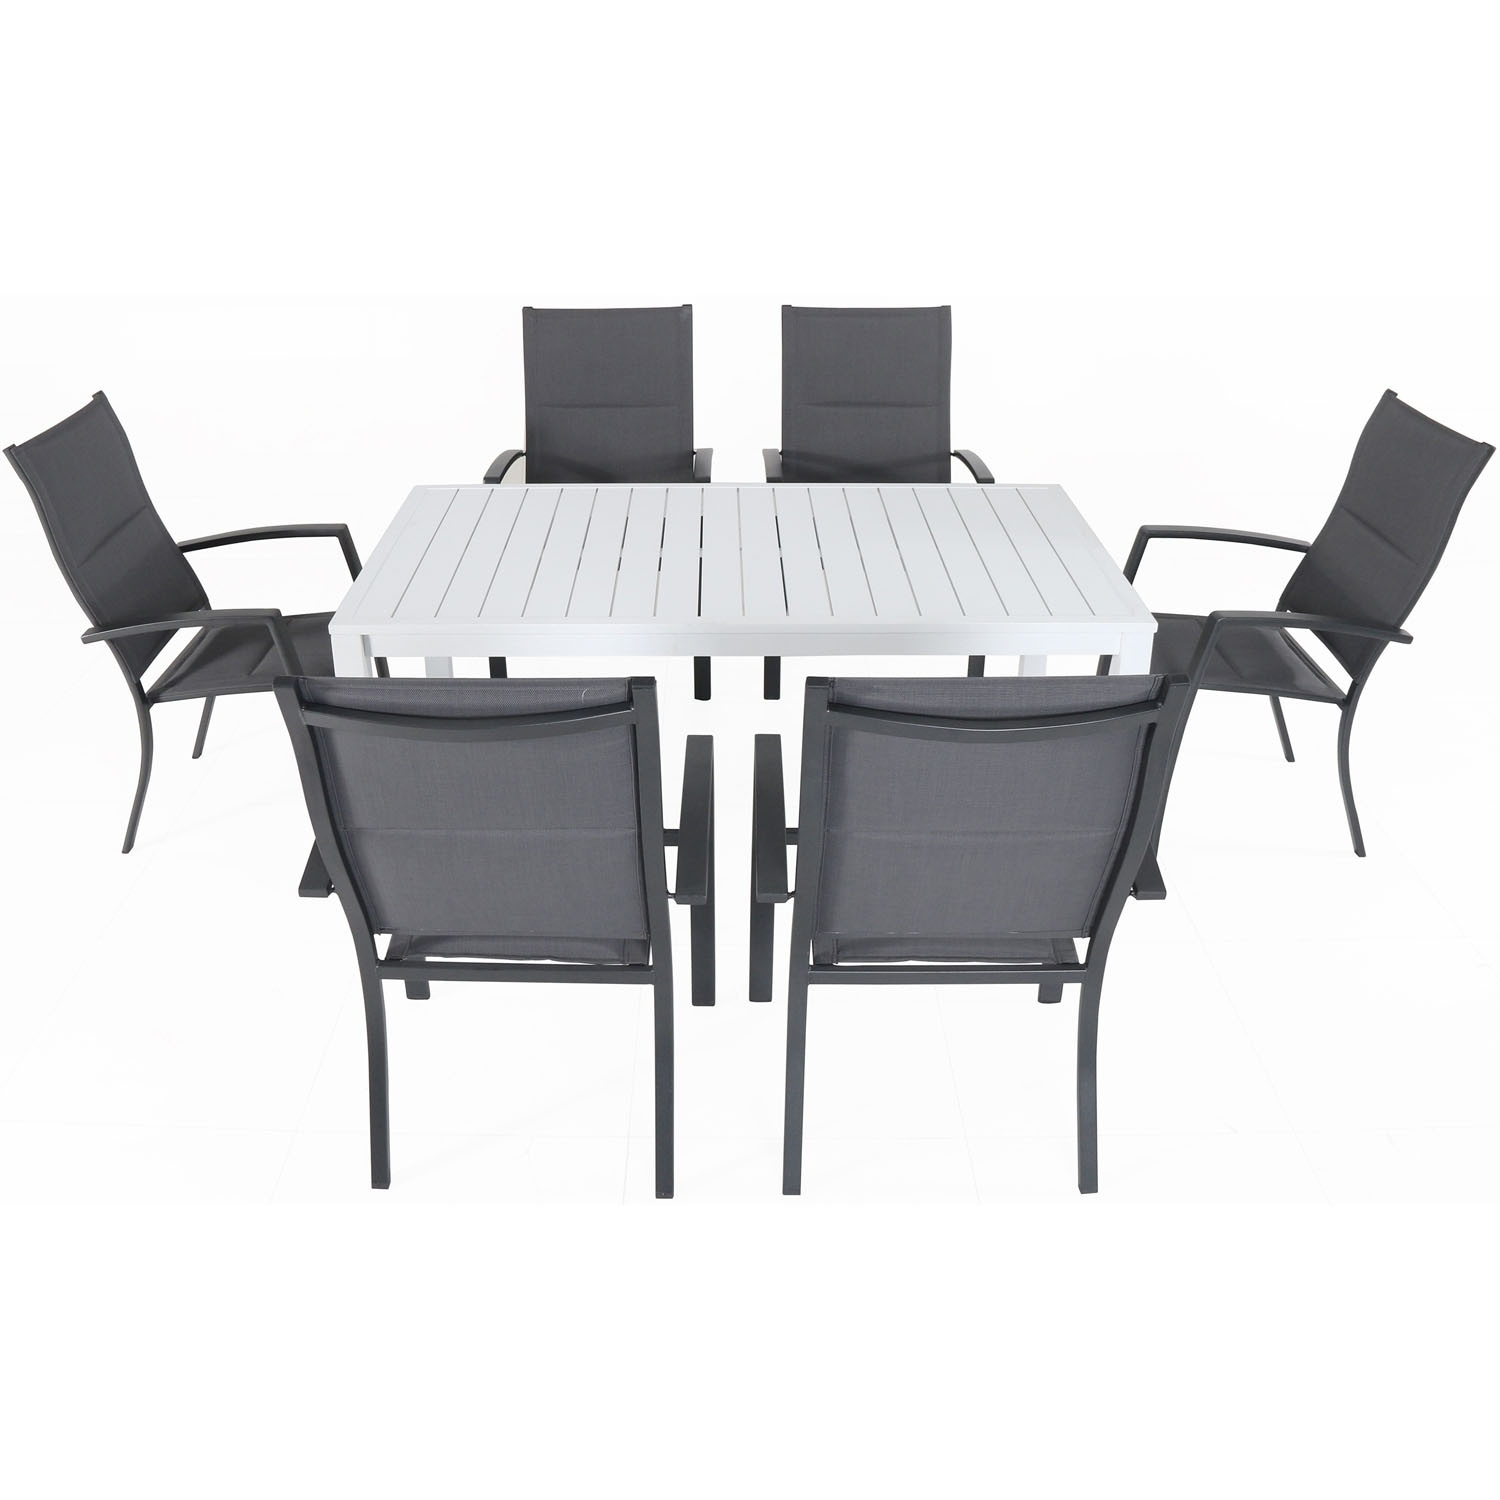 Cambridge Palermo 7-Piece Outdoor Dining Set with 6 Padded Sling Chairs in Gray and a 78 x 40 Dining Table